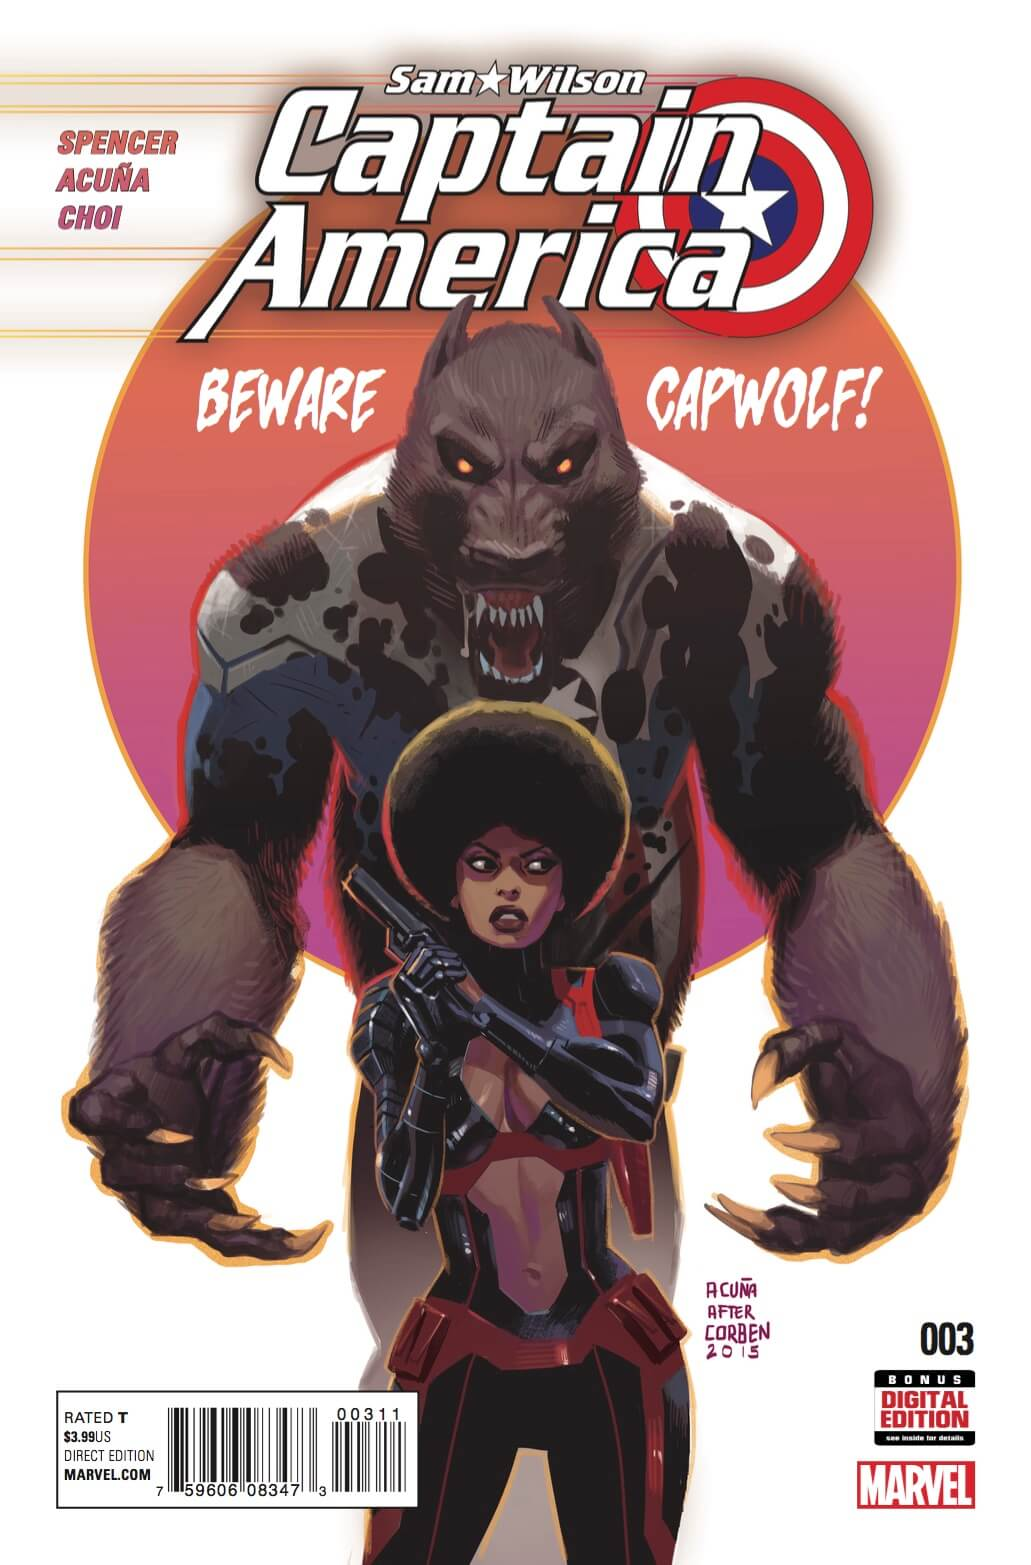 Sam Wilson: Captain America #3